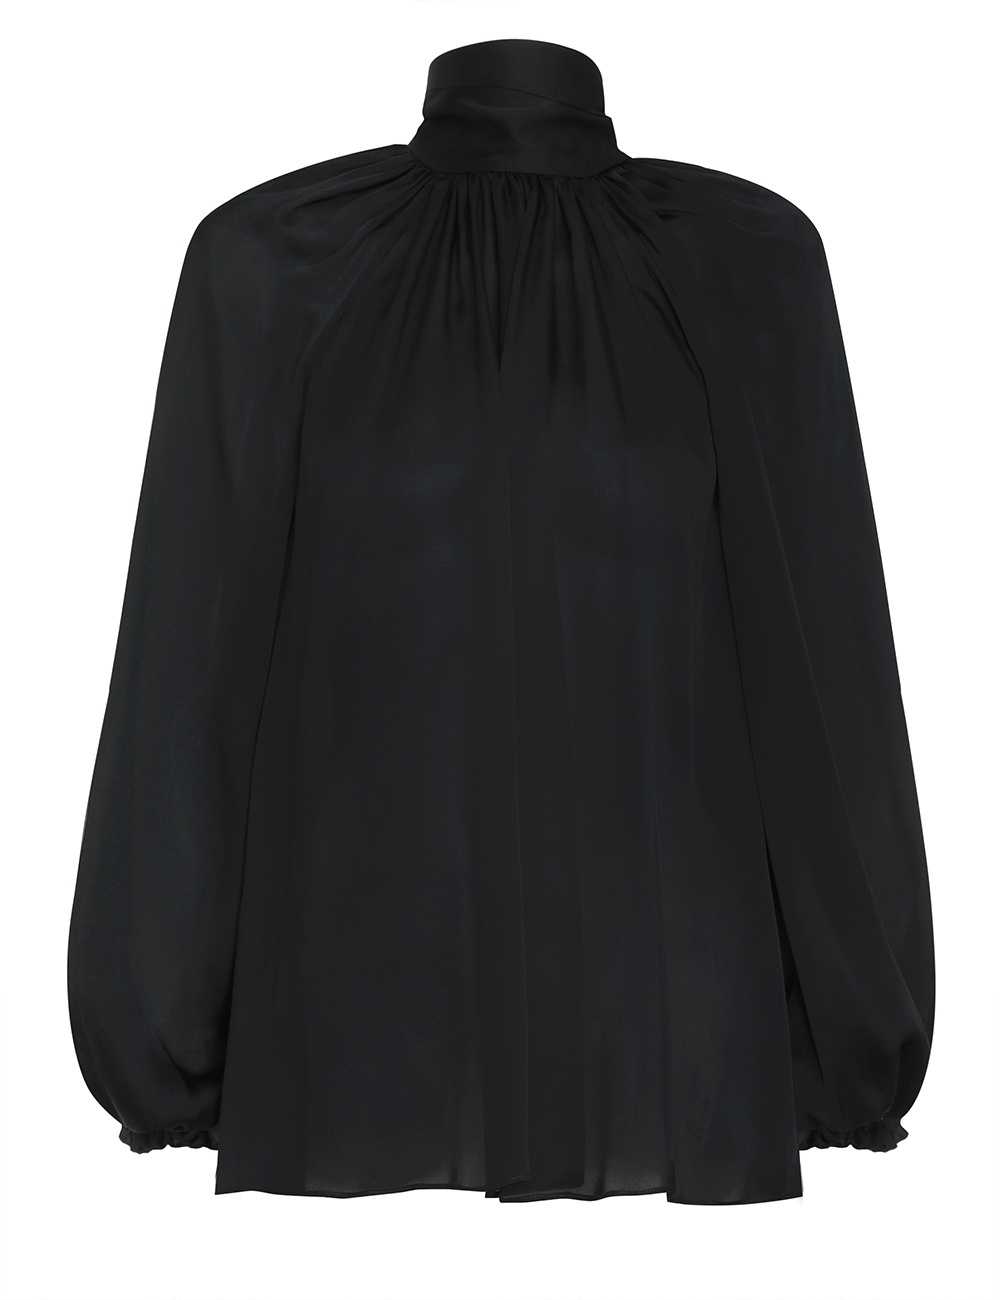 Gathered Bow Long Sleeve Top